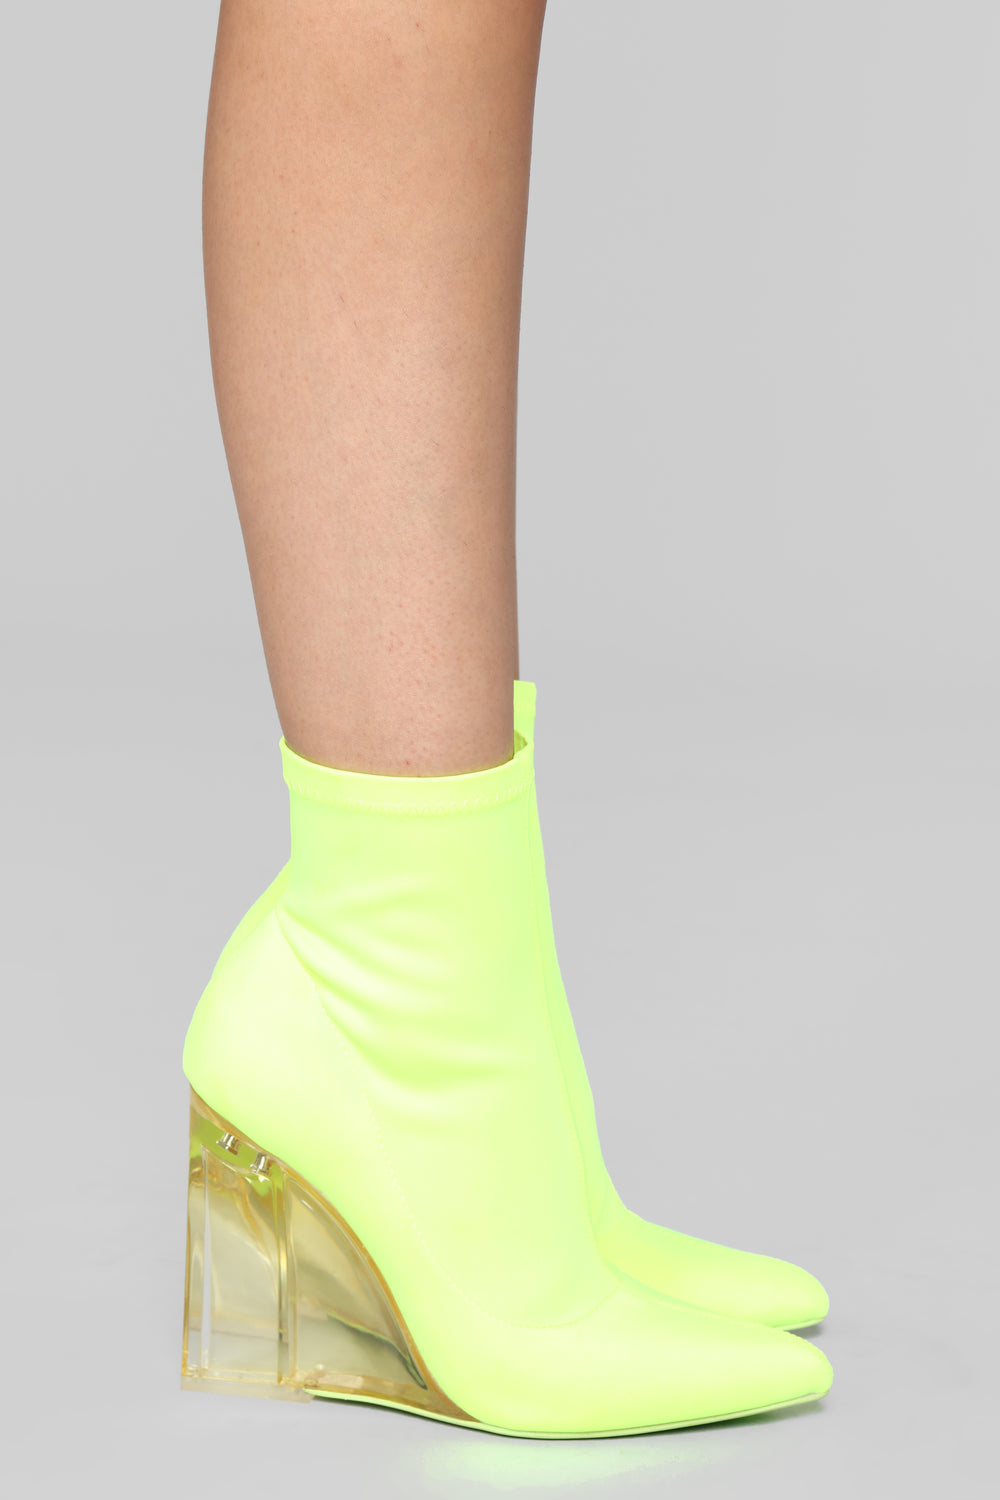 Out Of Line Bootie - Yellow